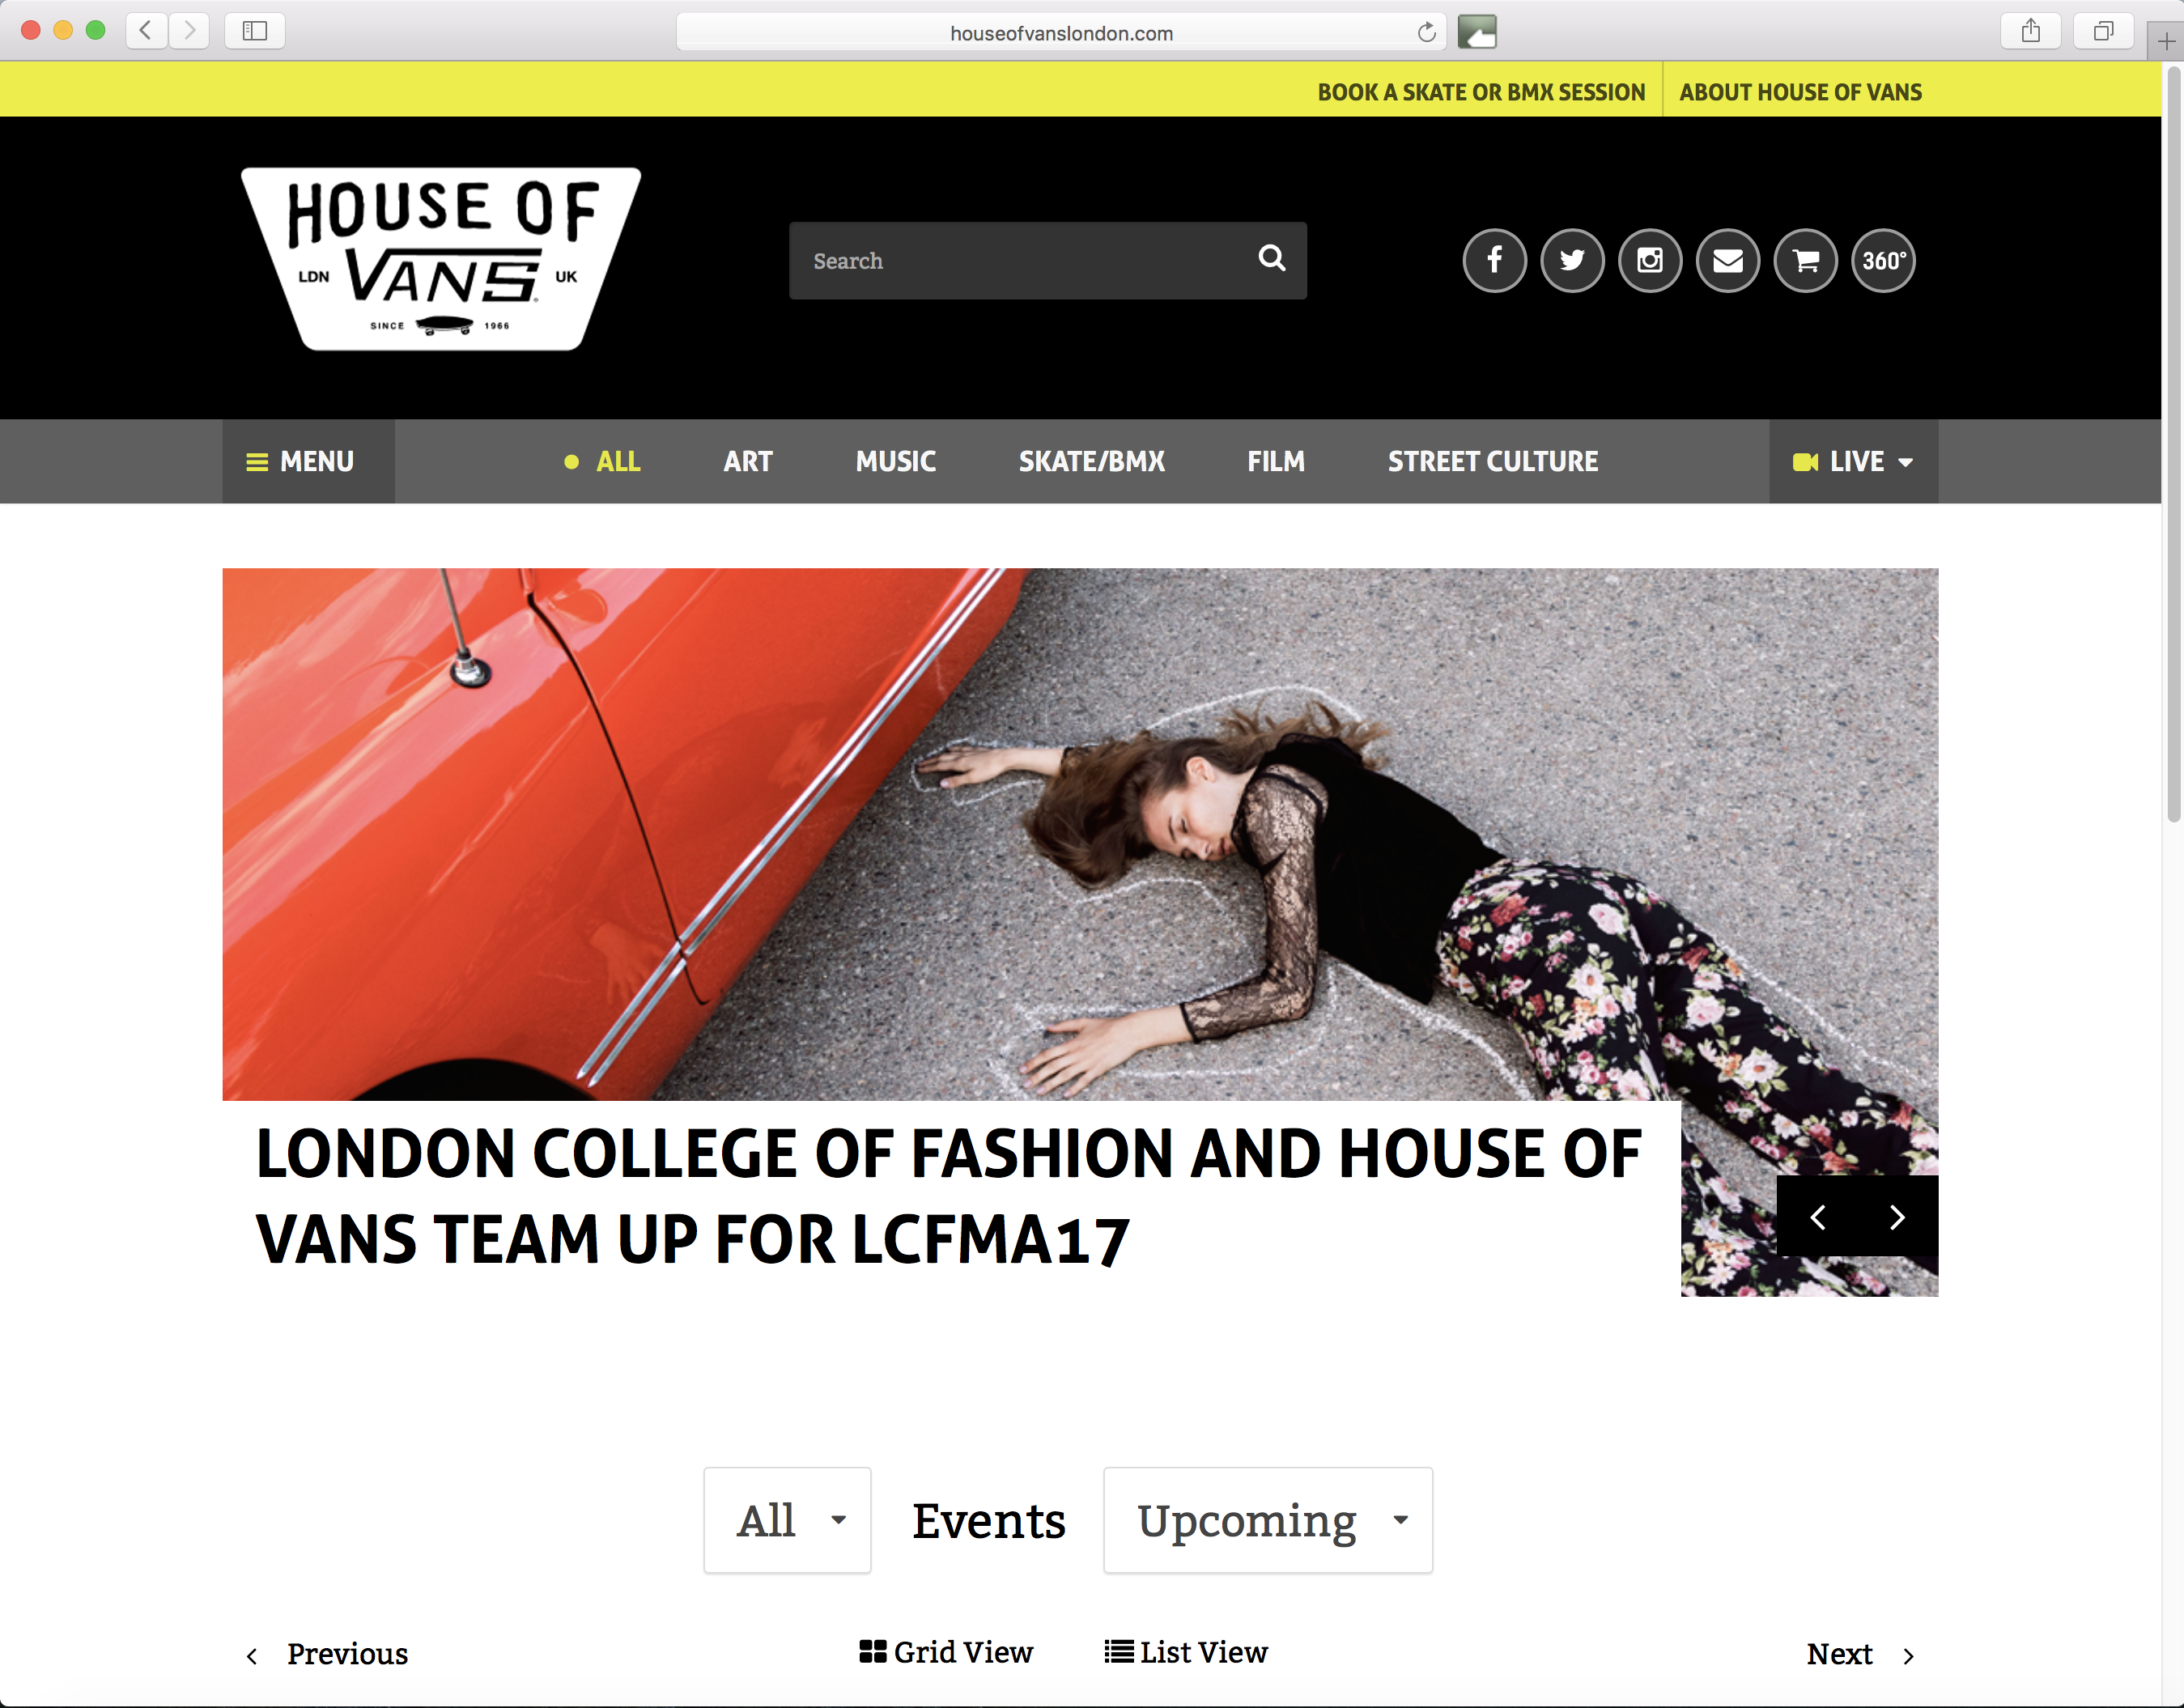 LCF MA & House of Vans